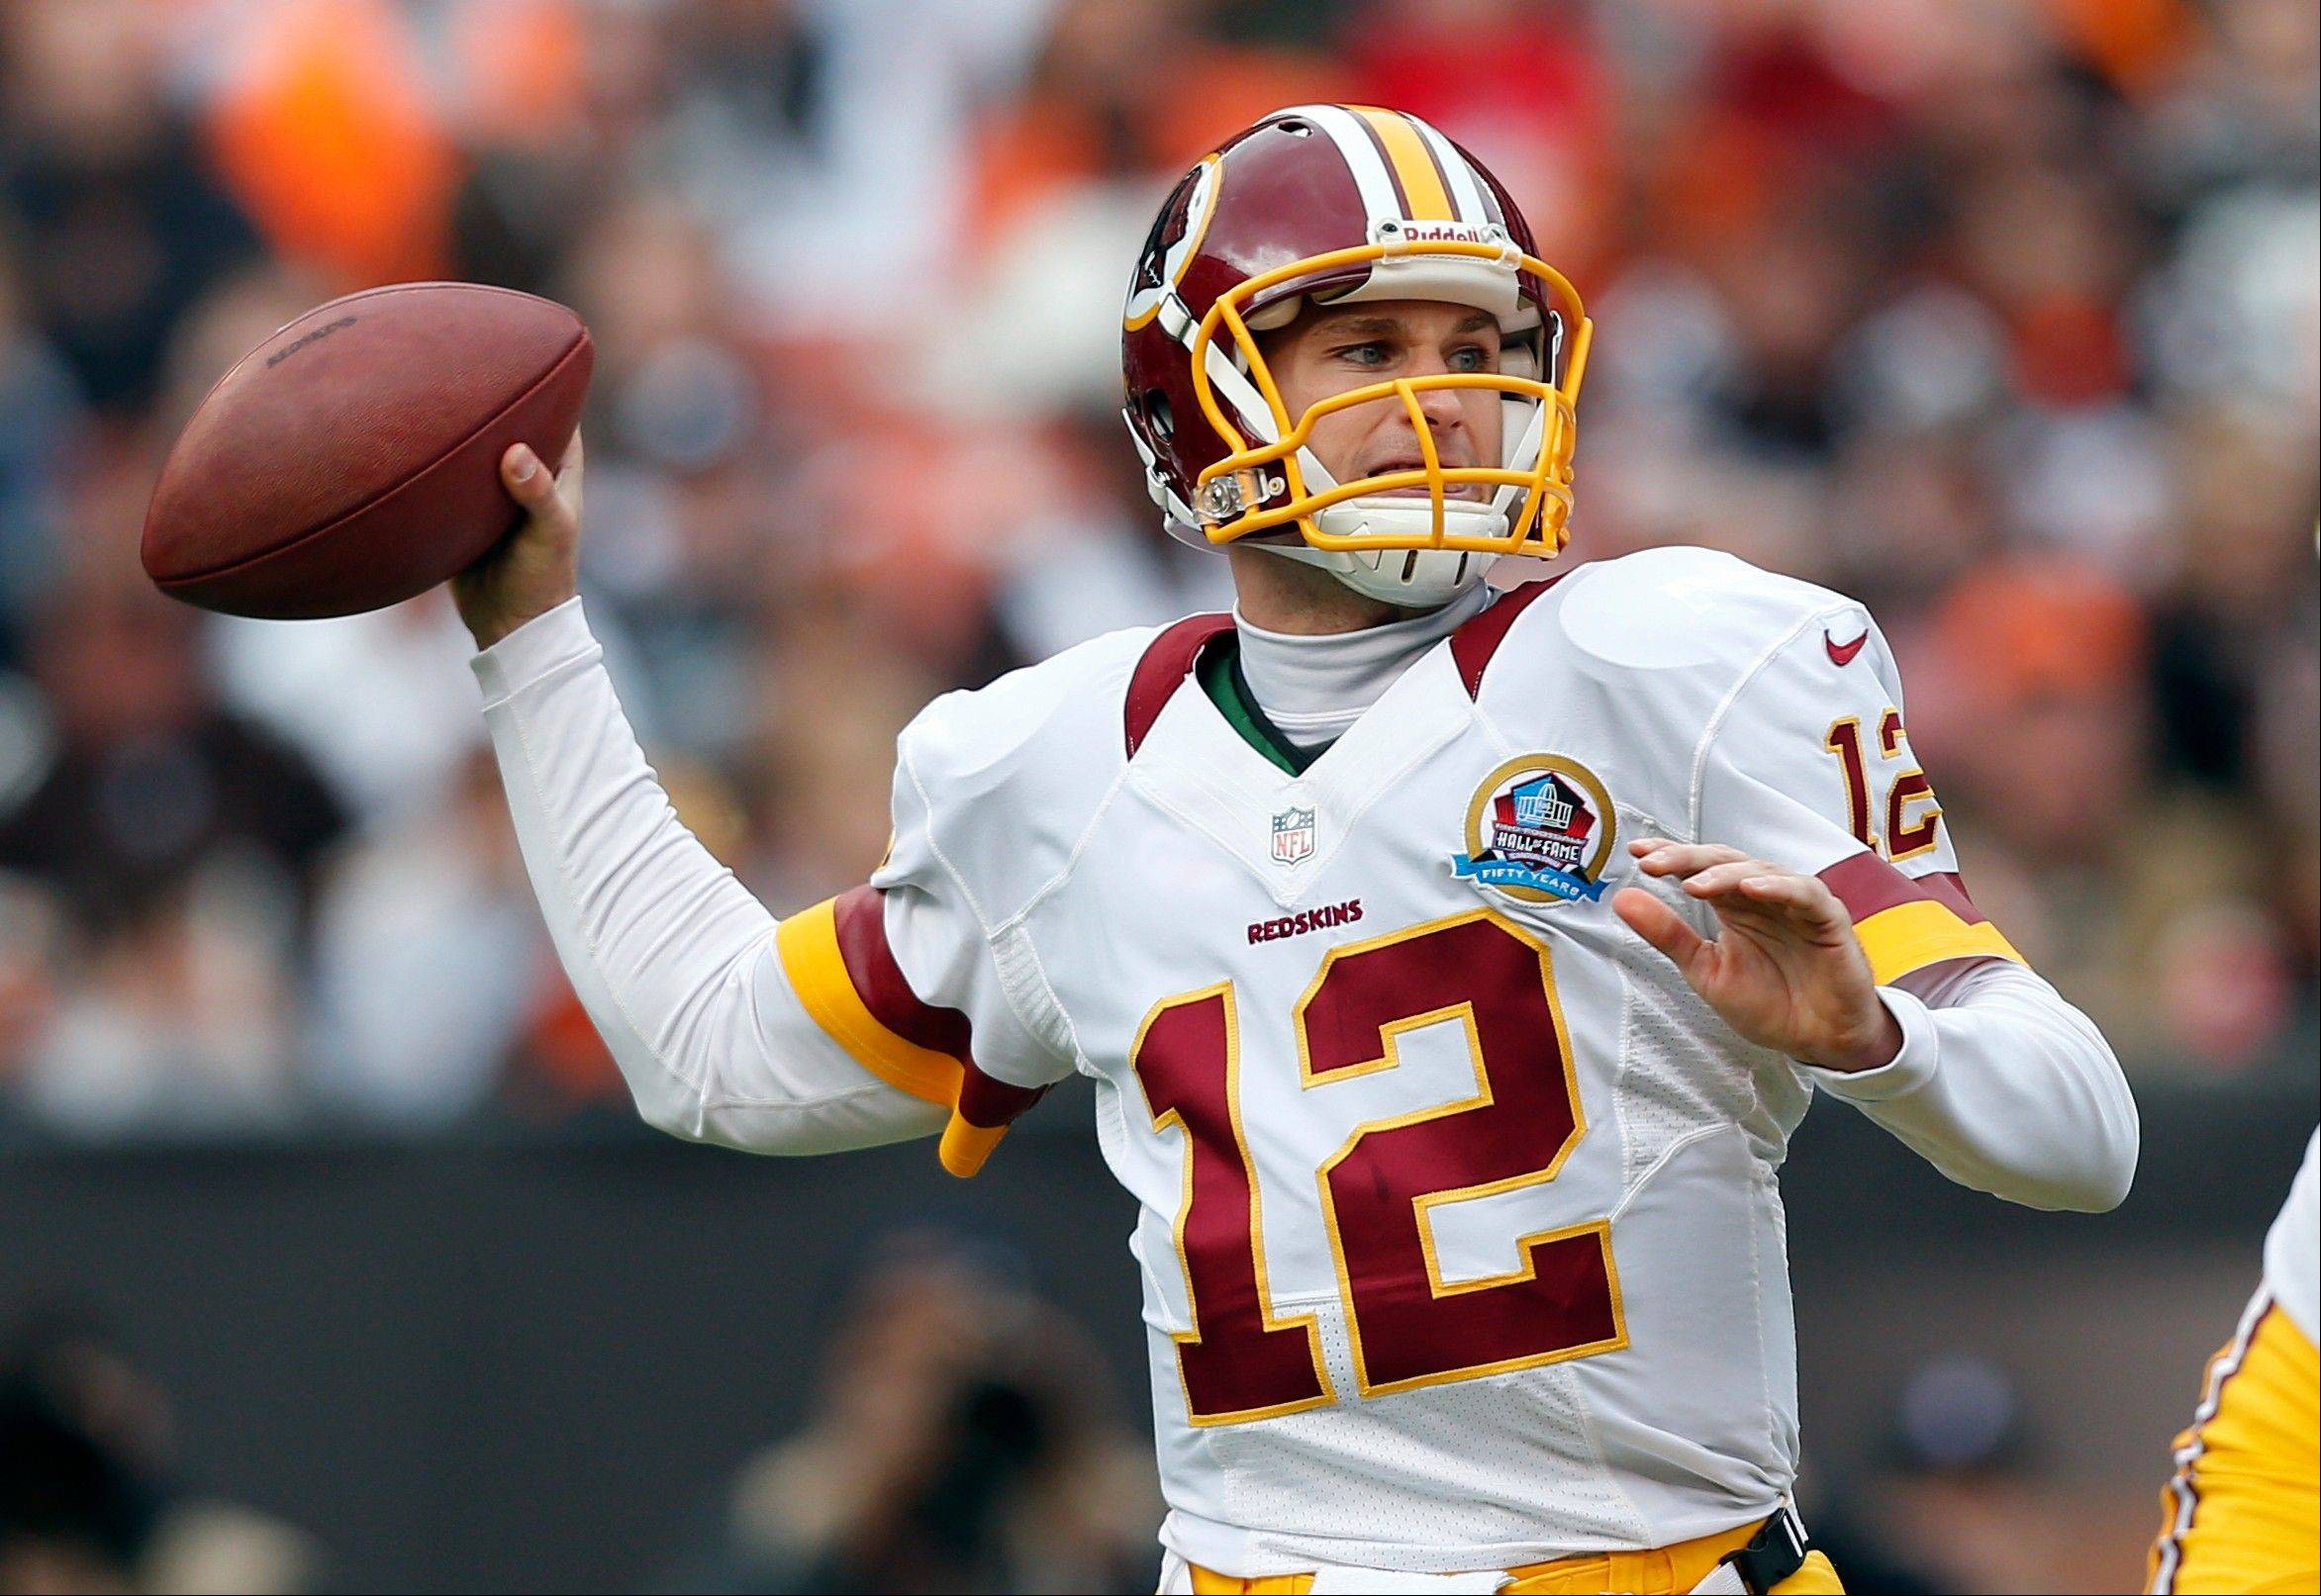 Washington Redskins quarterback Kirk Cousins passes against the Cleveland Browns in the first quarter in Cleveland, Sunday.